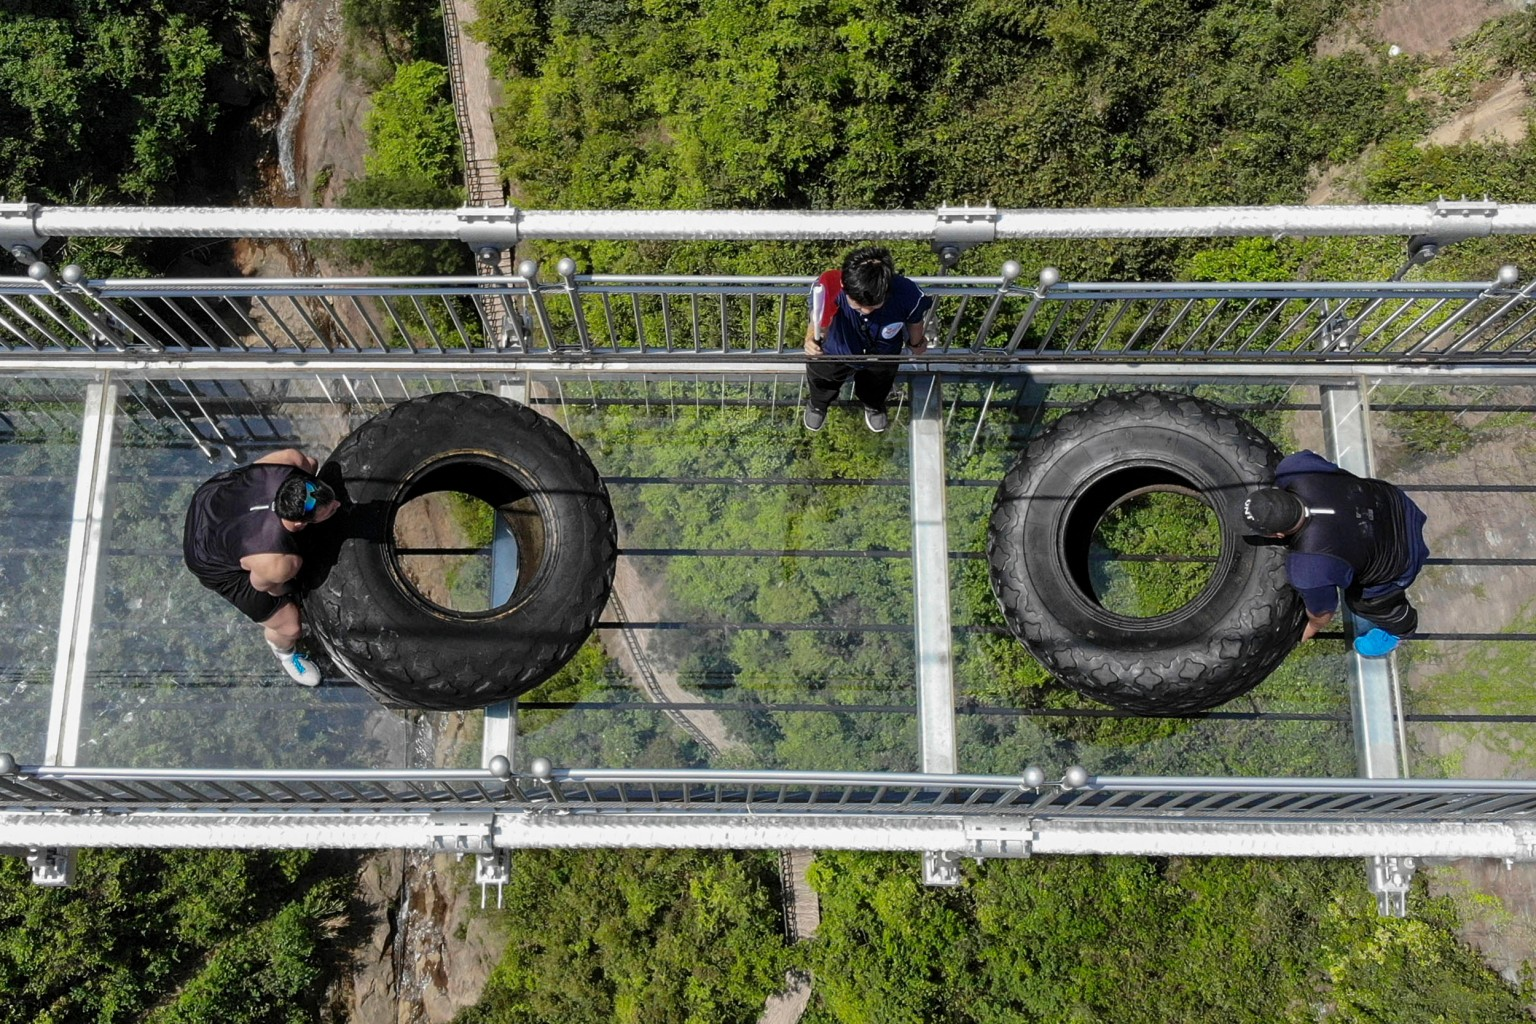 Competitors take part in a tire-flipping competition April 18 on a glass-bottomed bridge in Pingjiang in China's central Hunan province. Contestants flipped 440-pound tires to be the fastest to reach the center of the 984-foot-long bridge. AFP/Getty Images